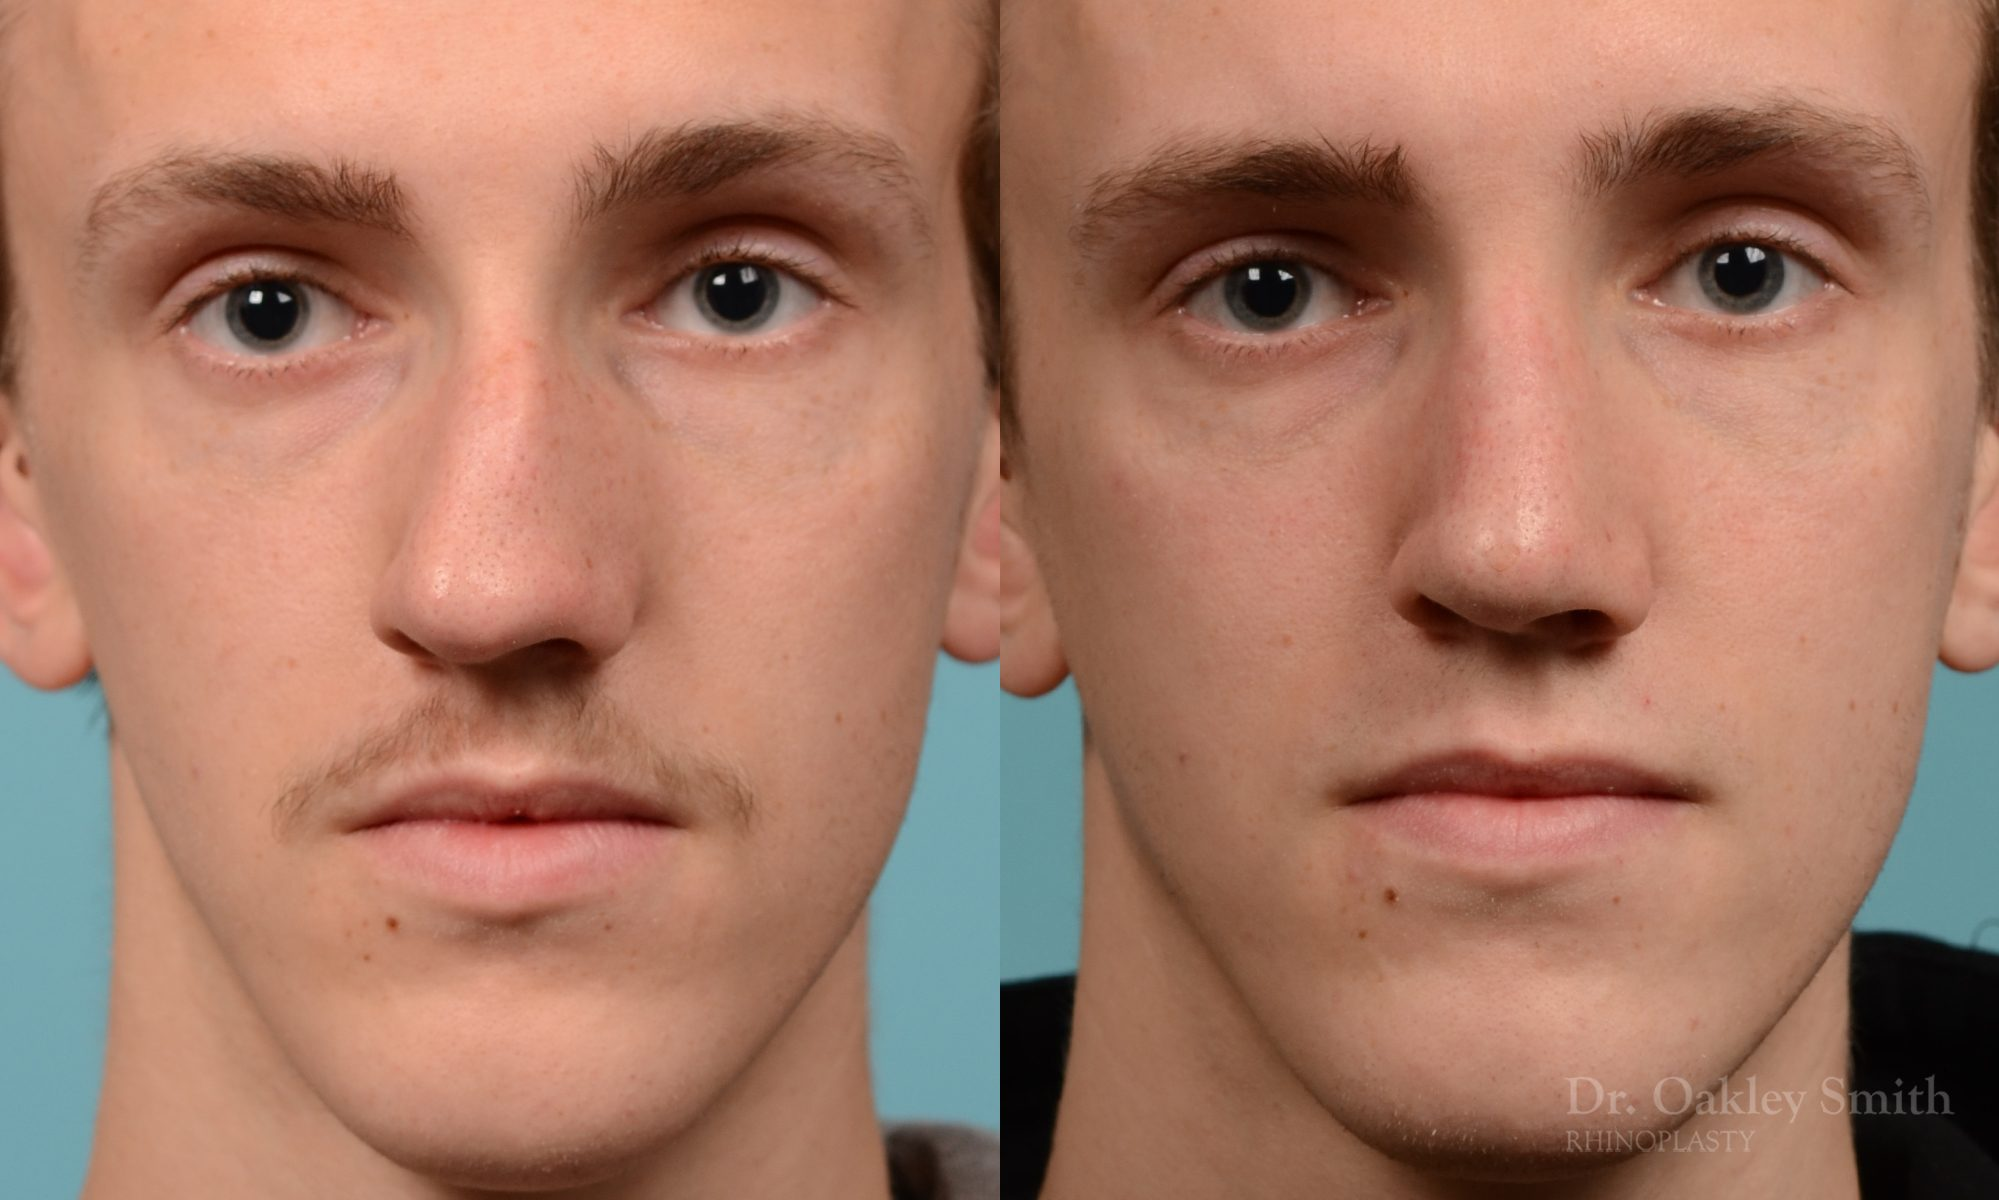 Male rhinoplasty for a curved nose